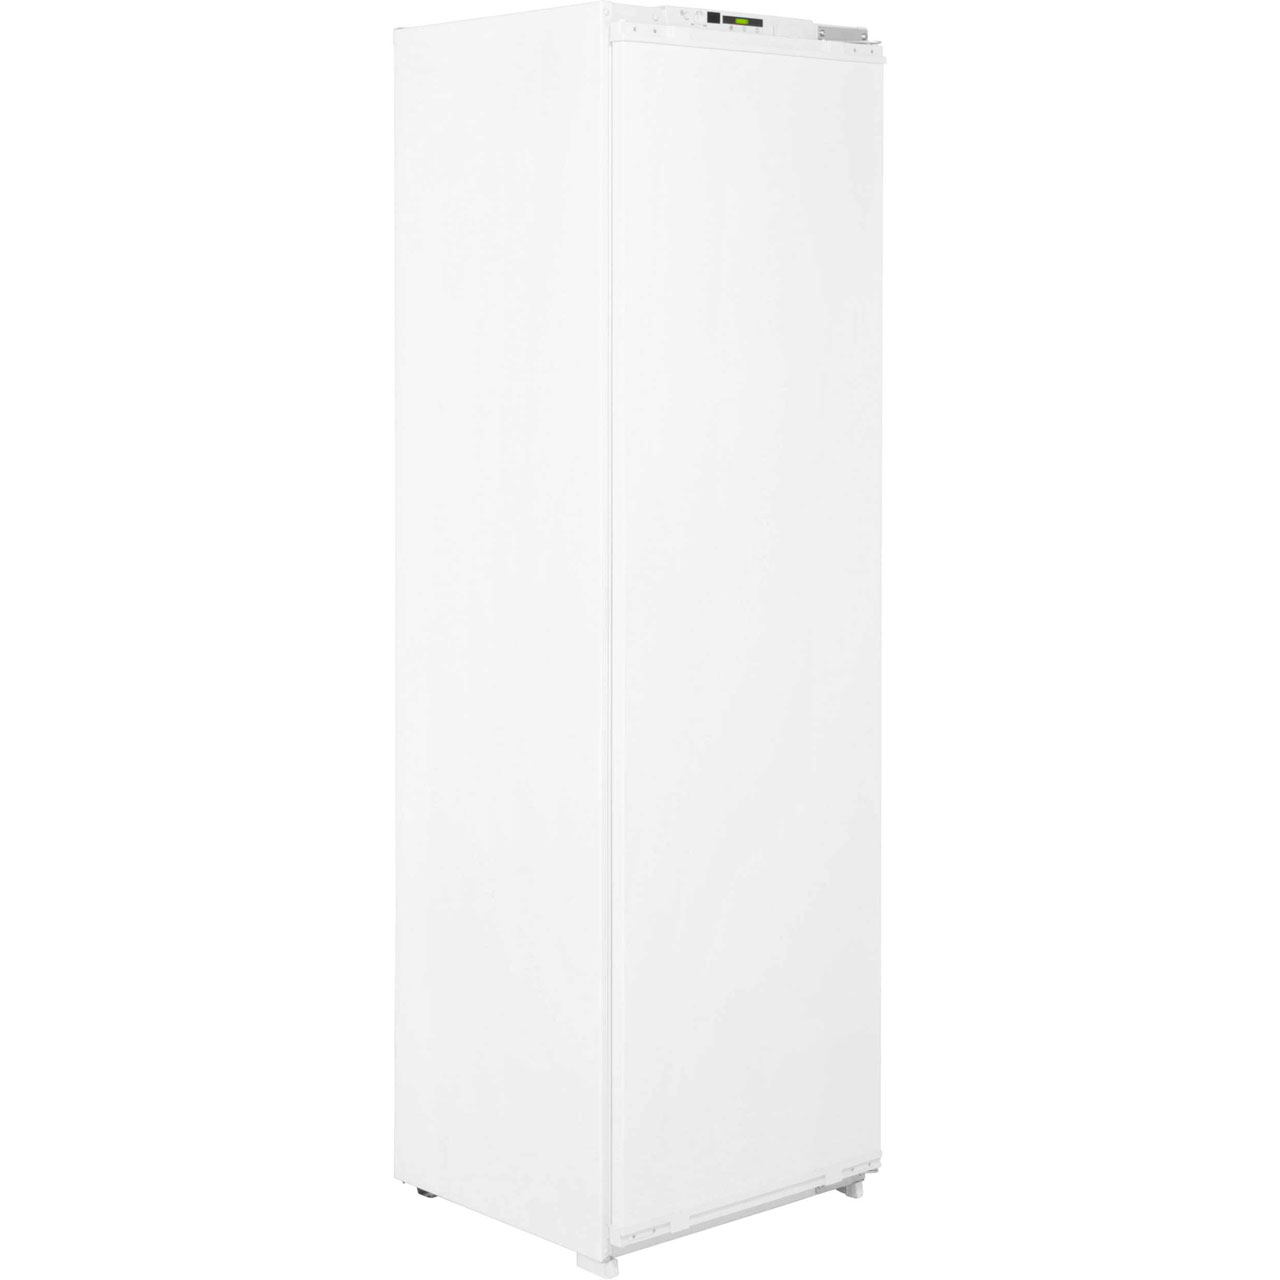 Beko BZ77F Integrated Freezer Frost Free in White